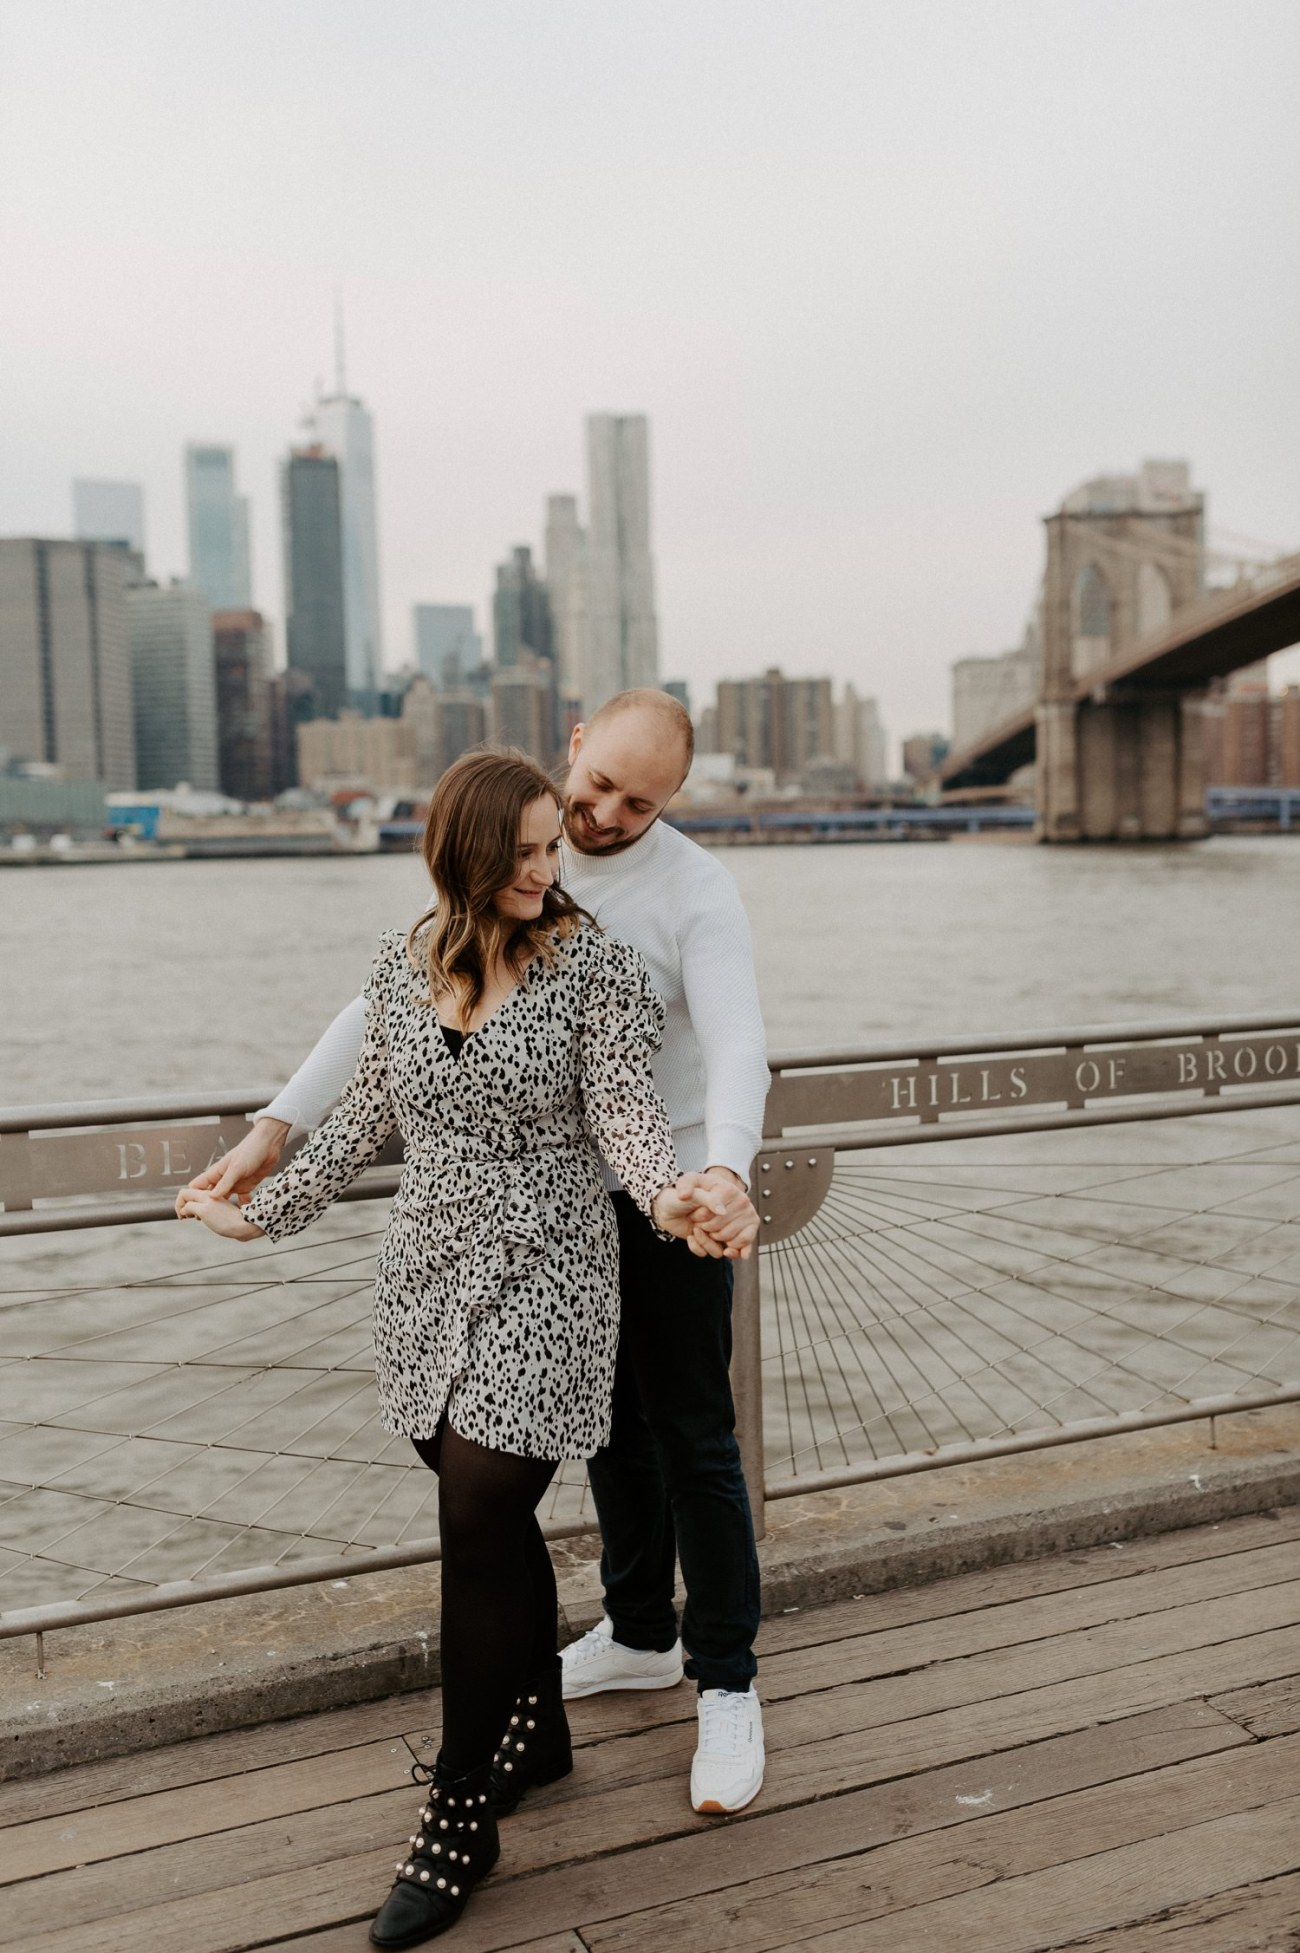 Brooklyn Bridge Engagement Photos Brooklyn Dumbo Couple Session NYC Wedding Photographer Anais Possamai Photography 02